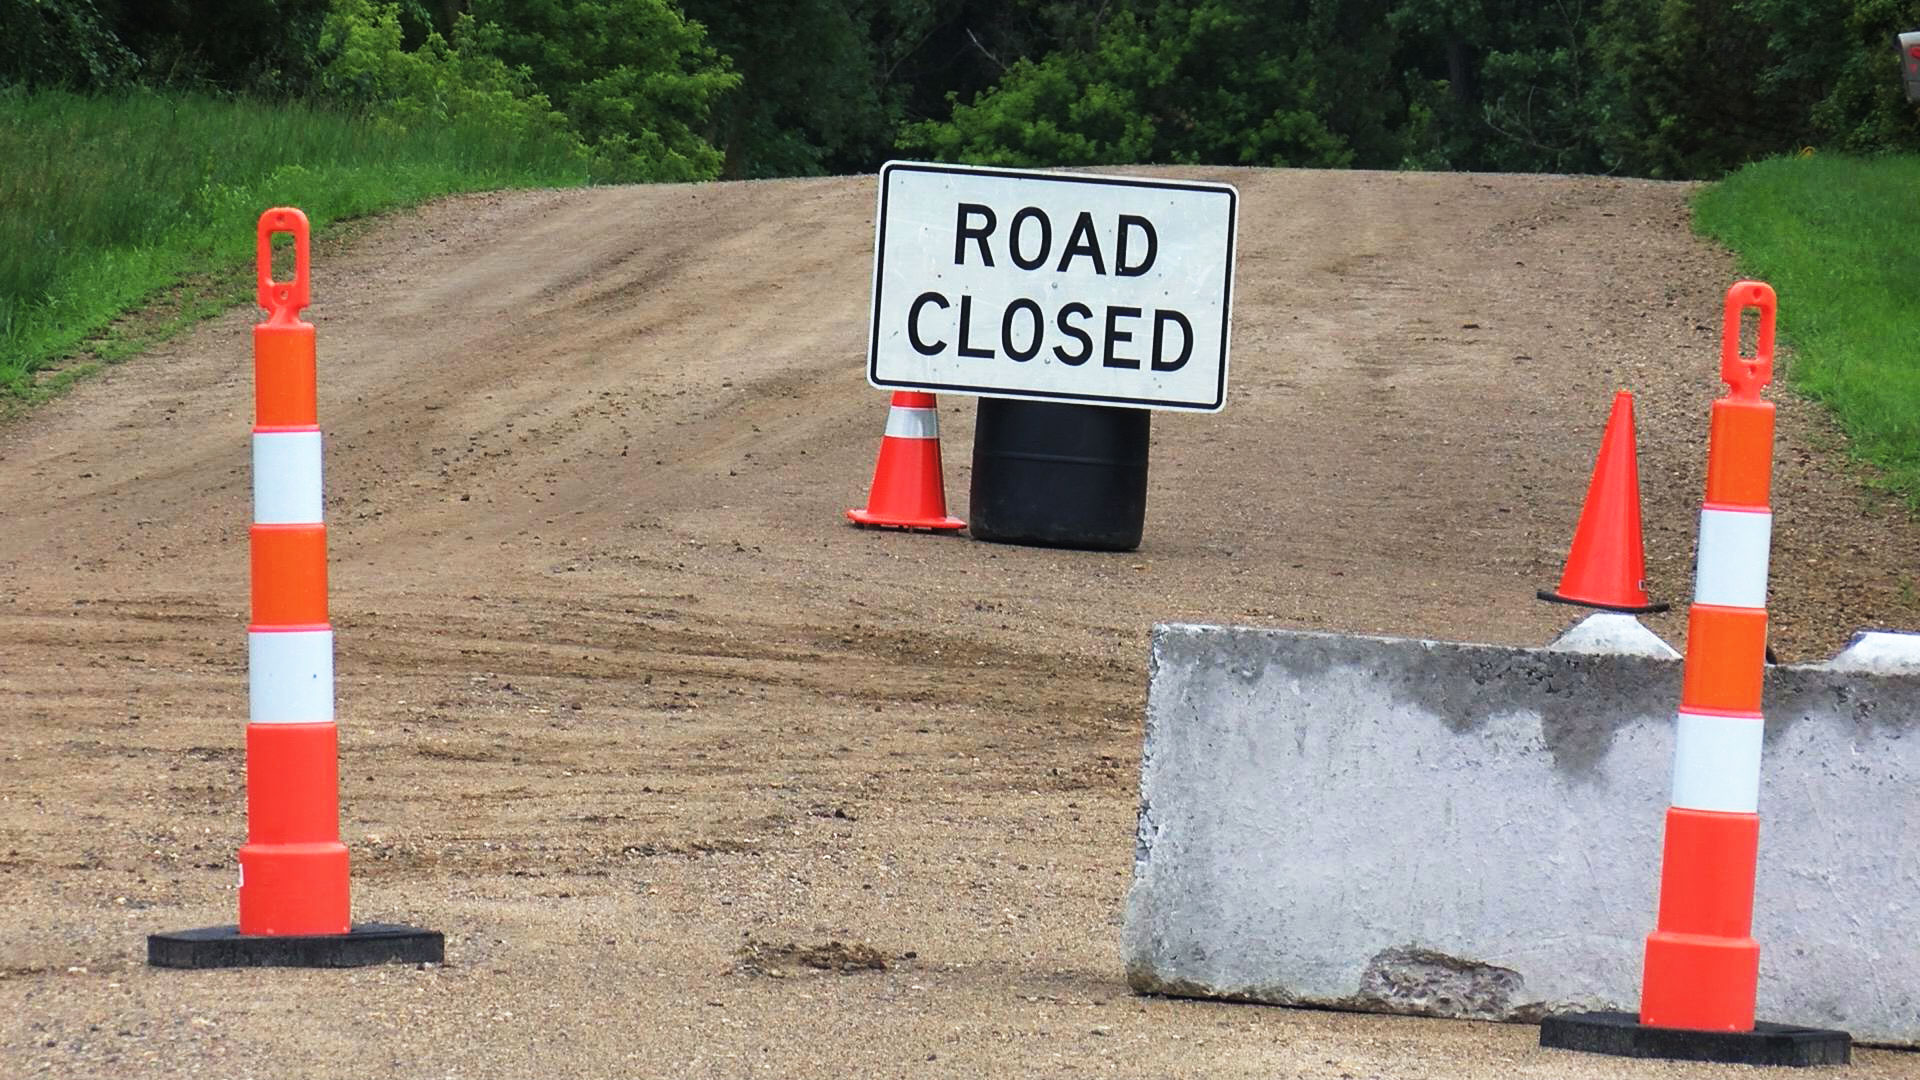 KELO Road Closed